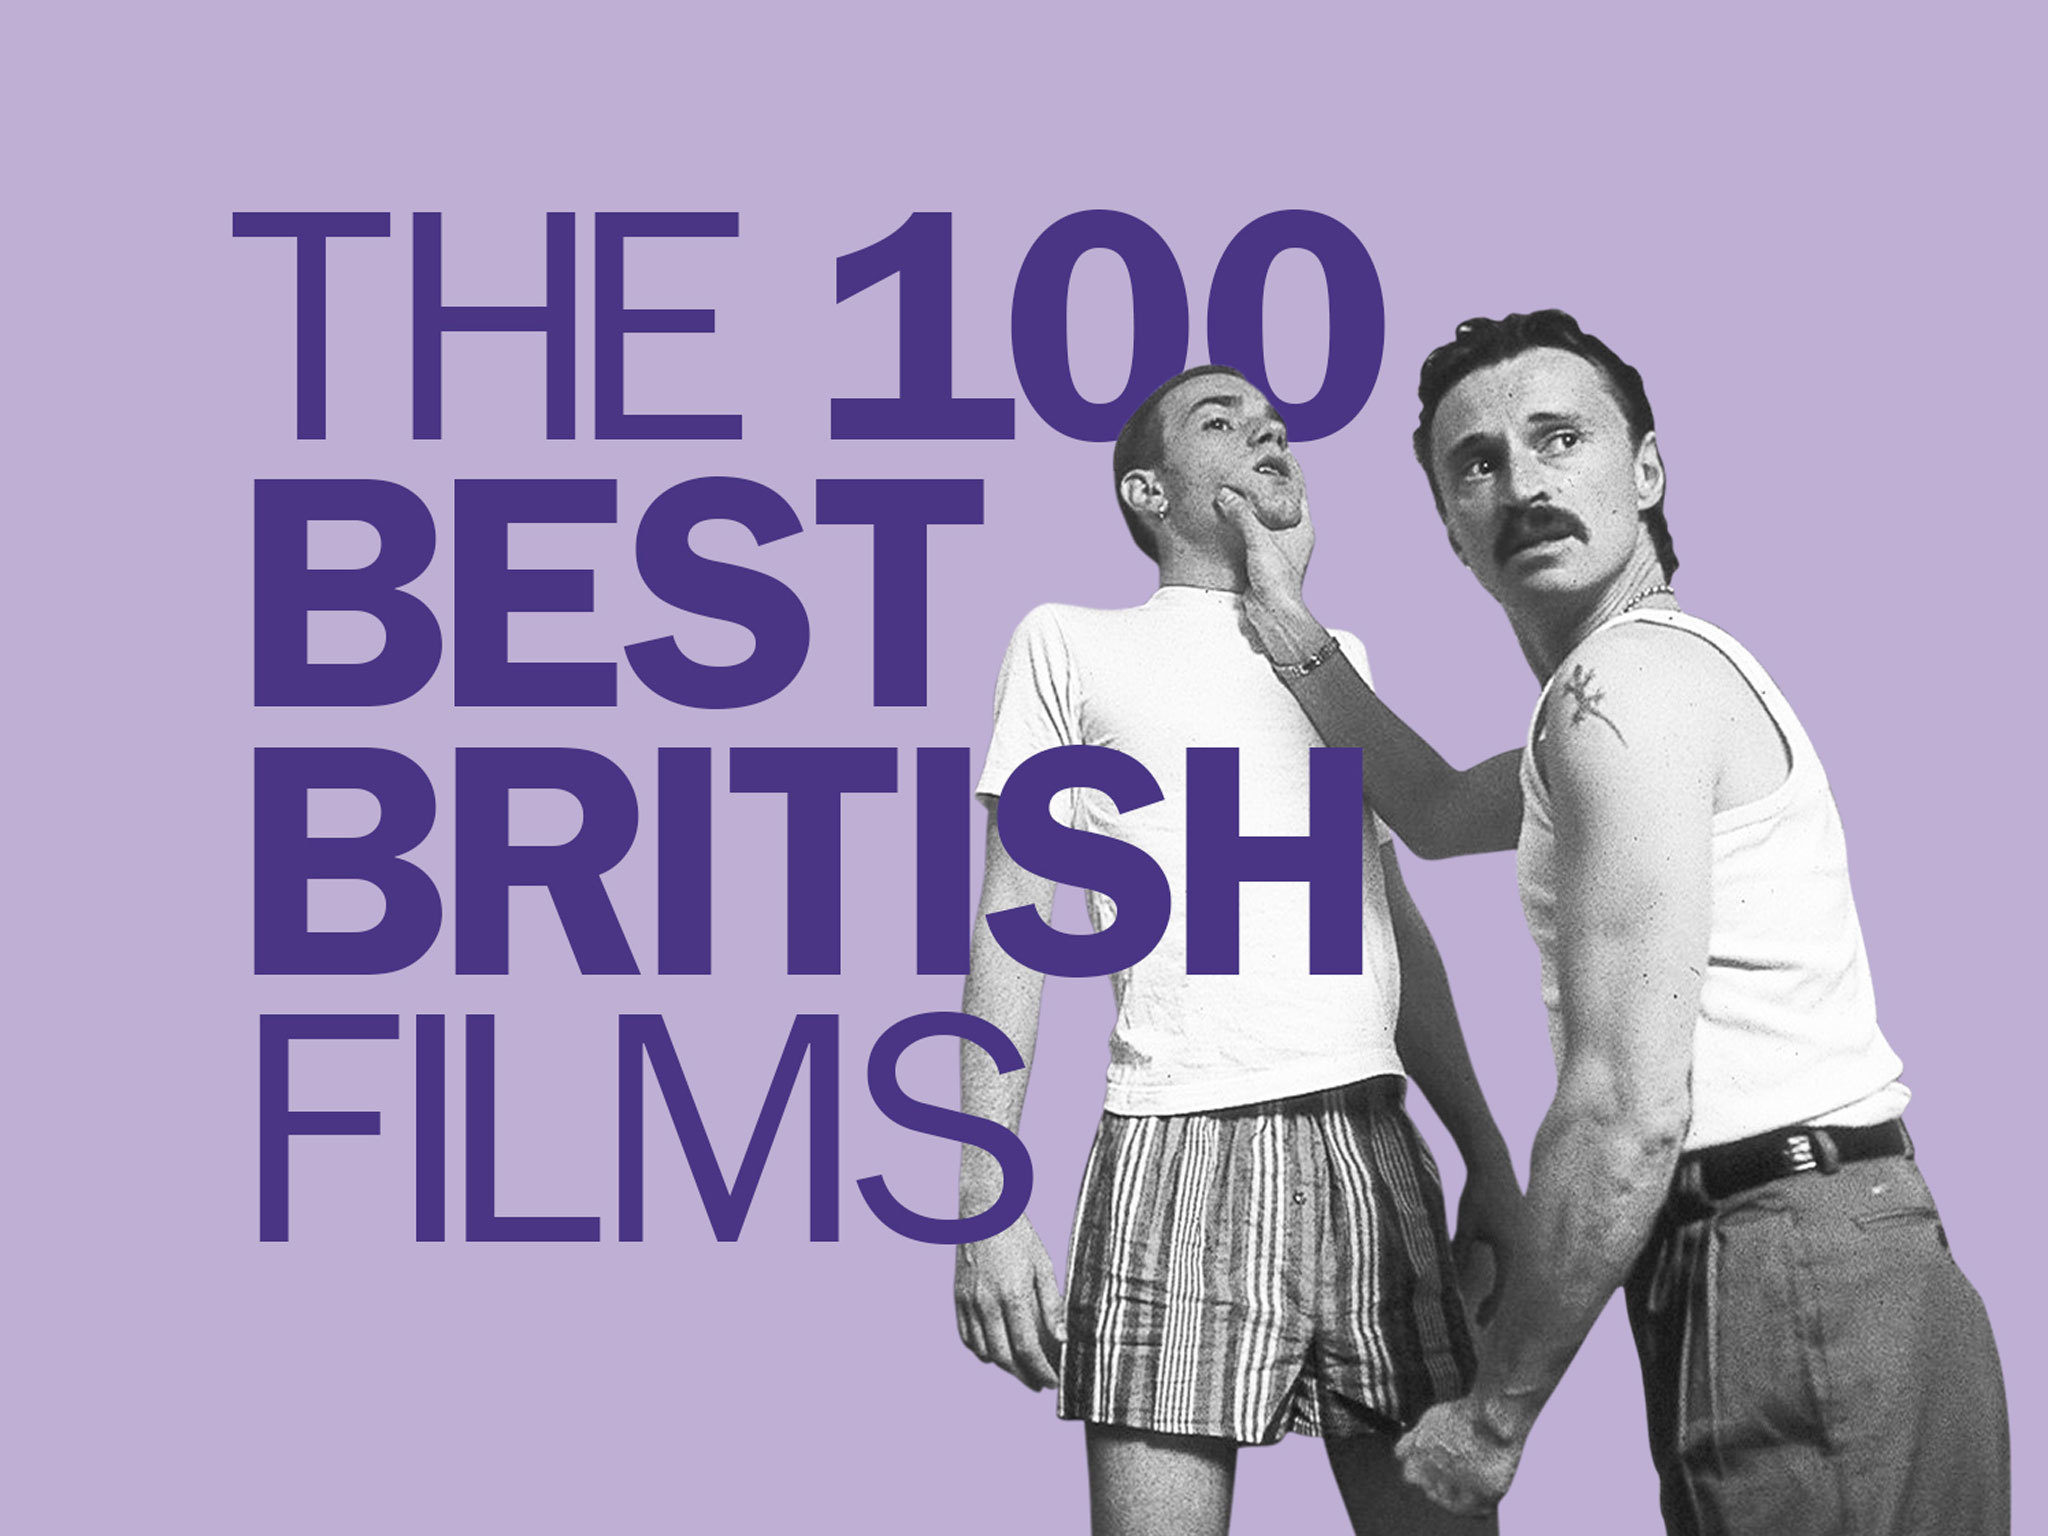 The 100 best British films